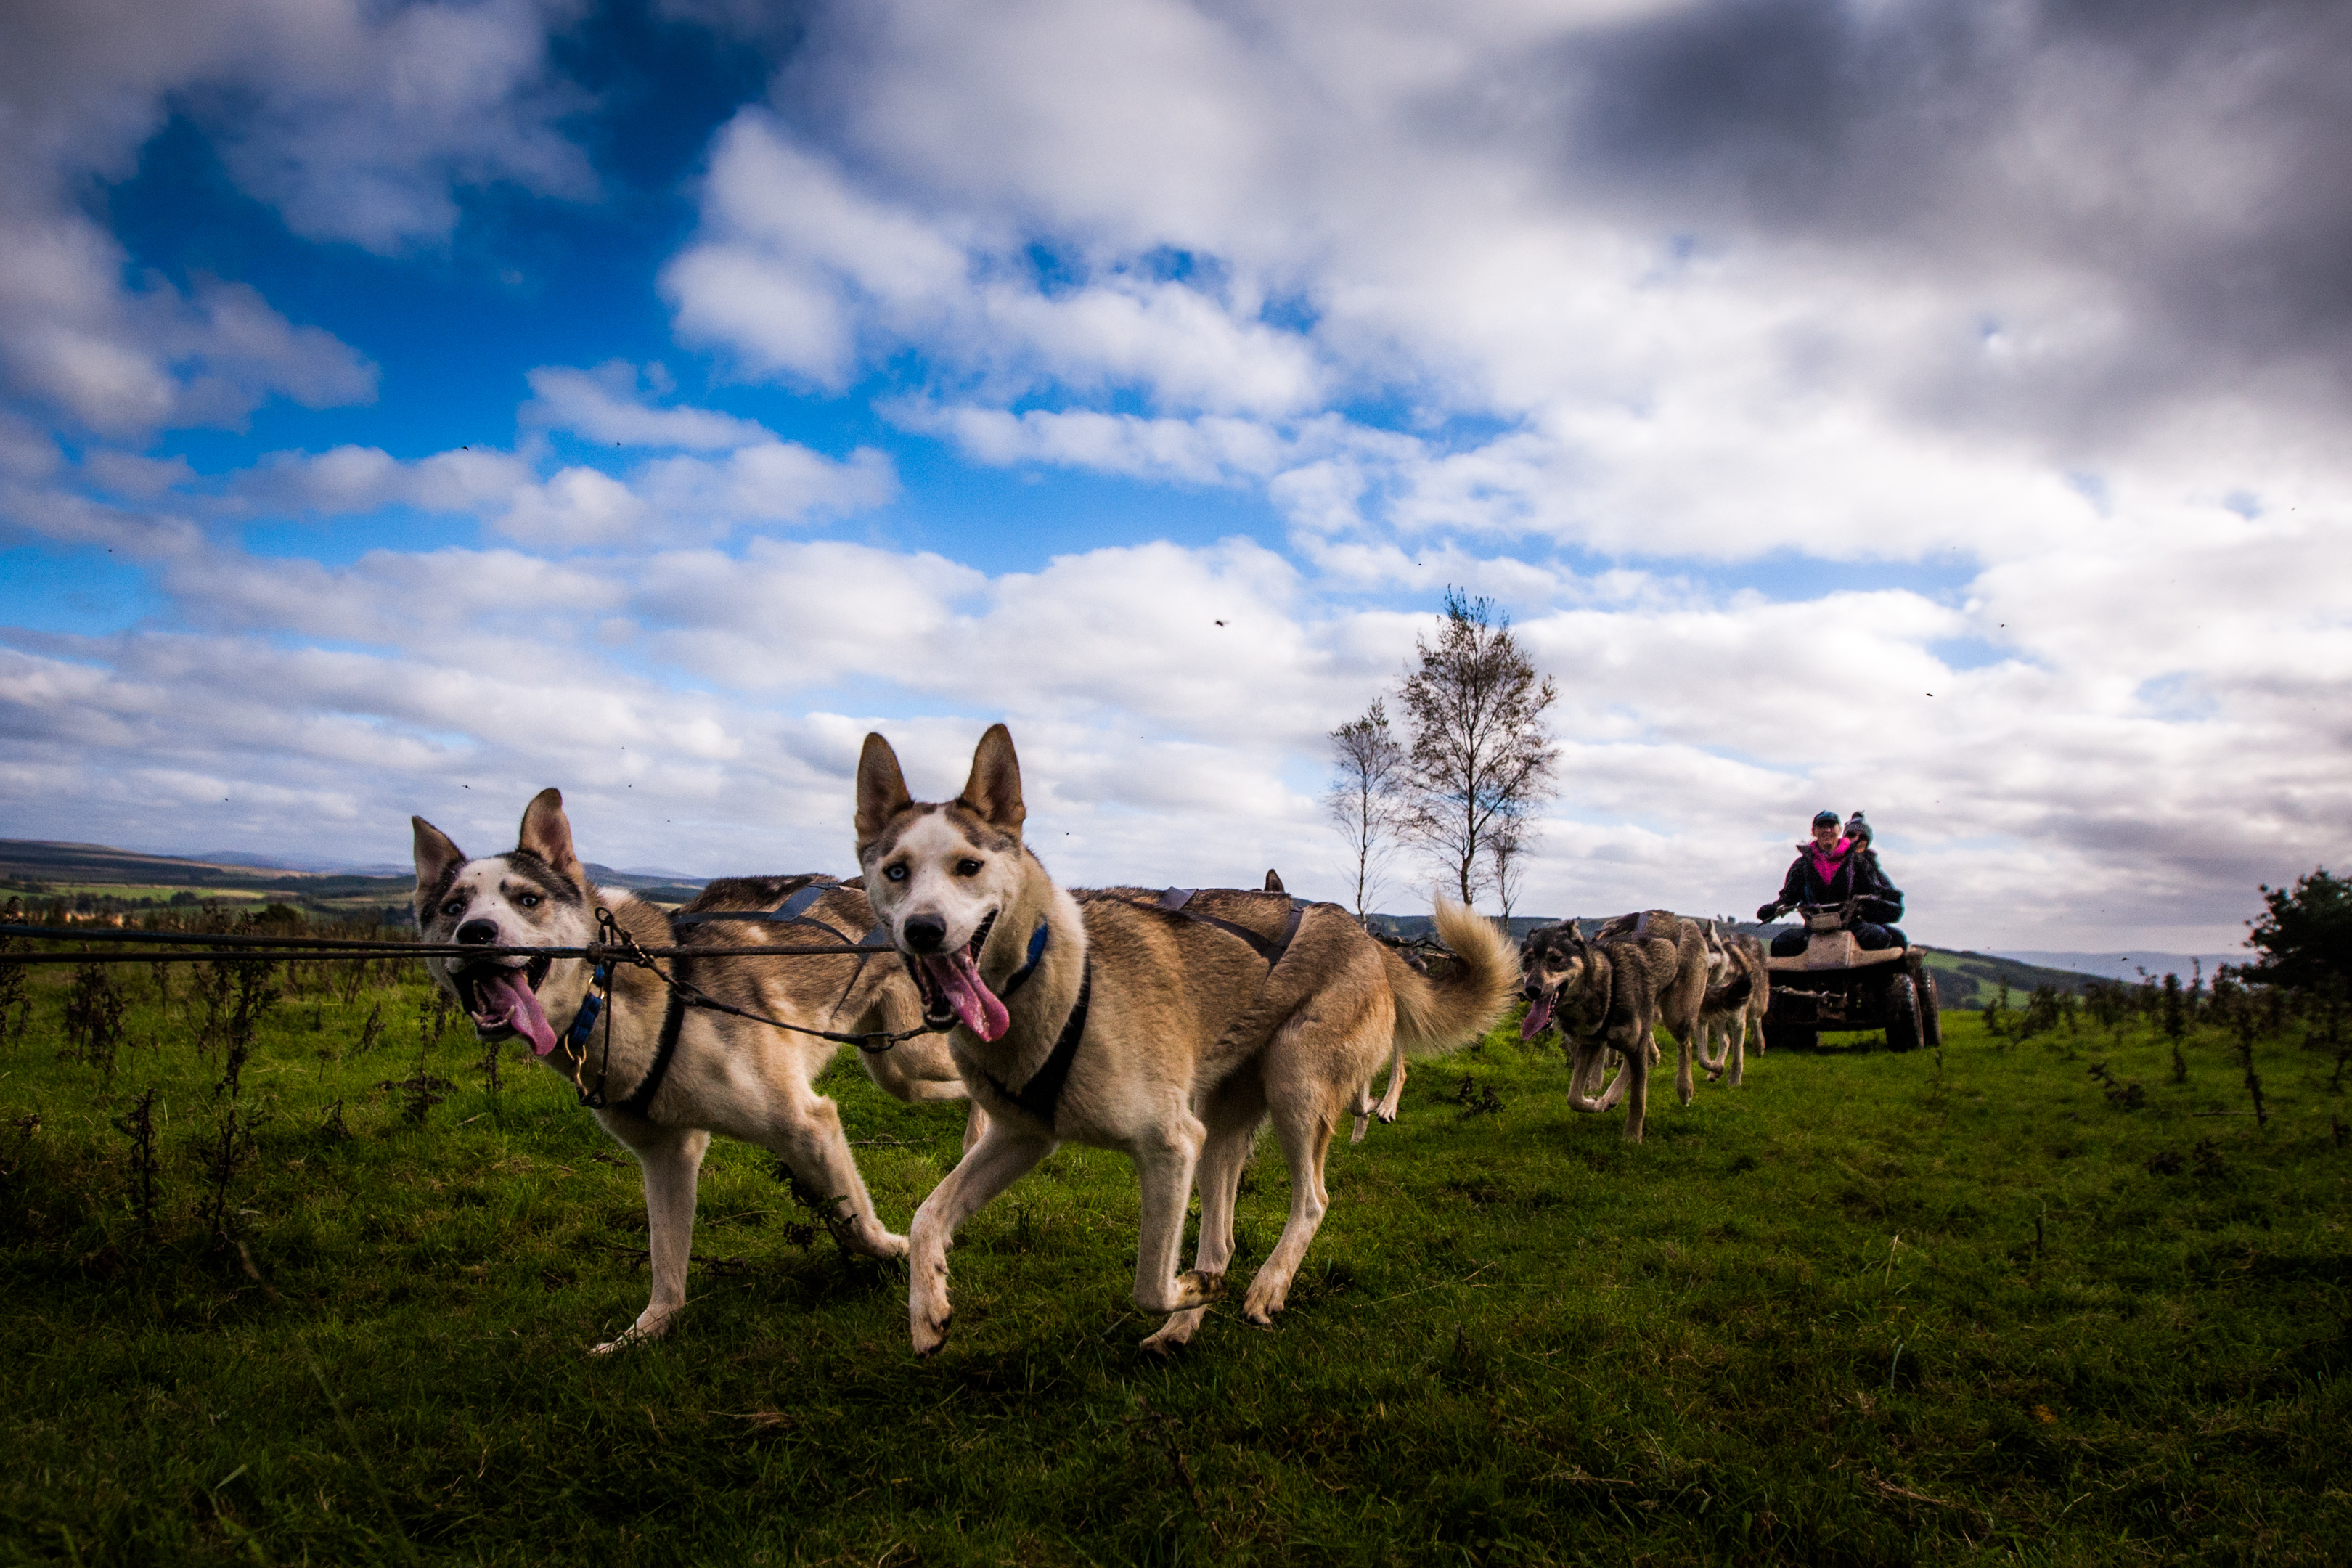 Huskies are demanding working dogs but Game of Thrones has made them in demand pets - sadly often by owners who then abandon them.